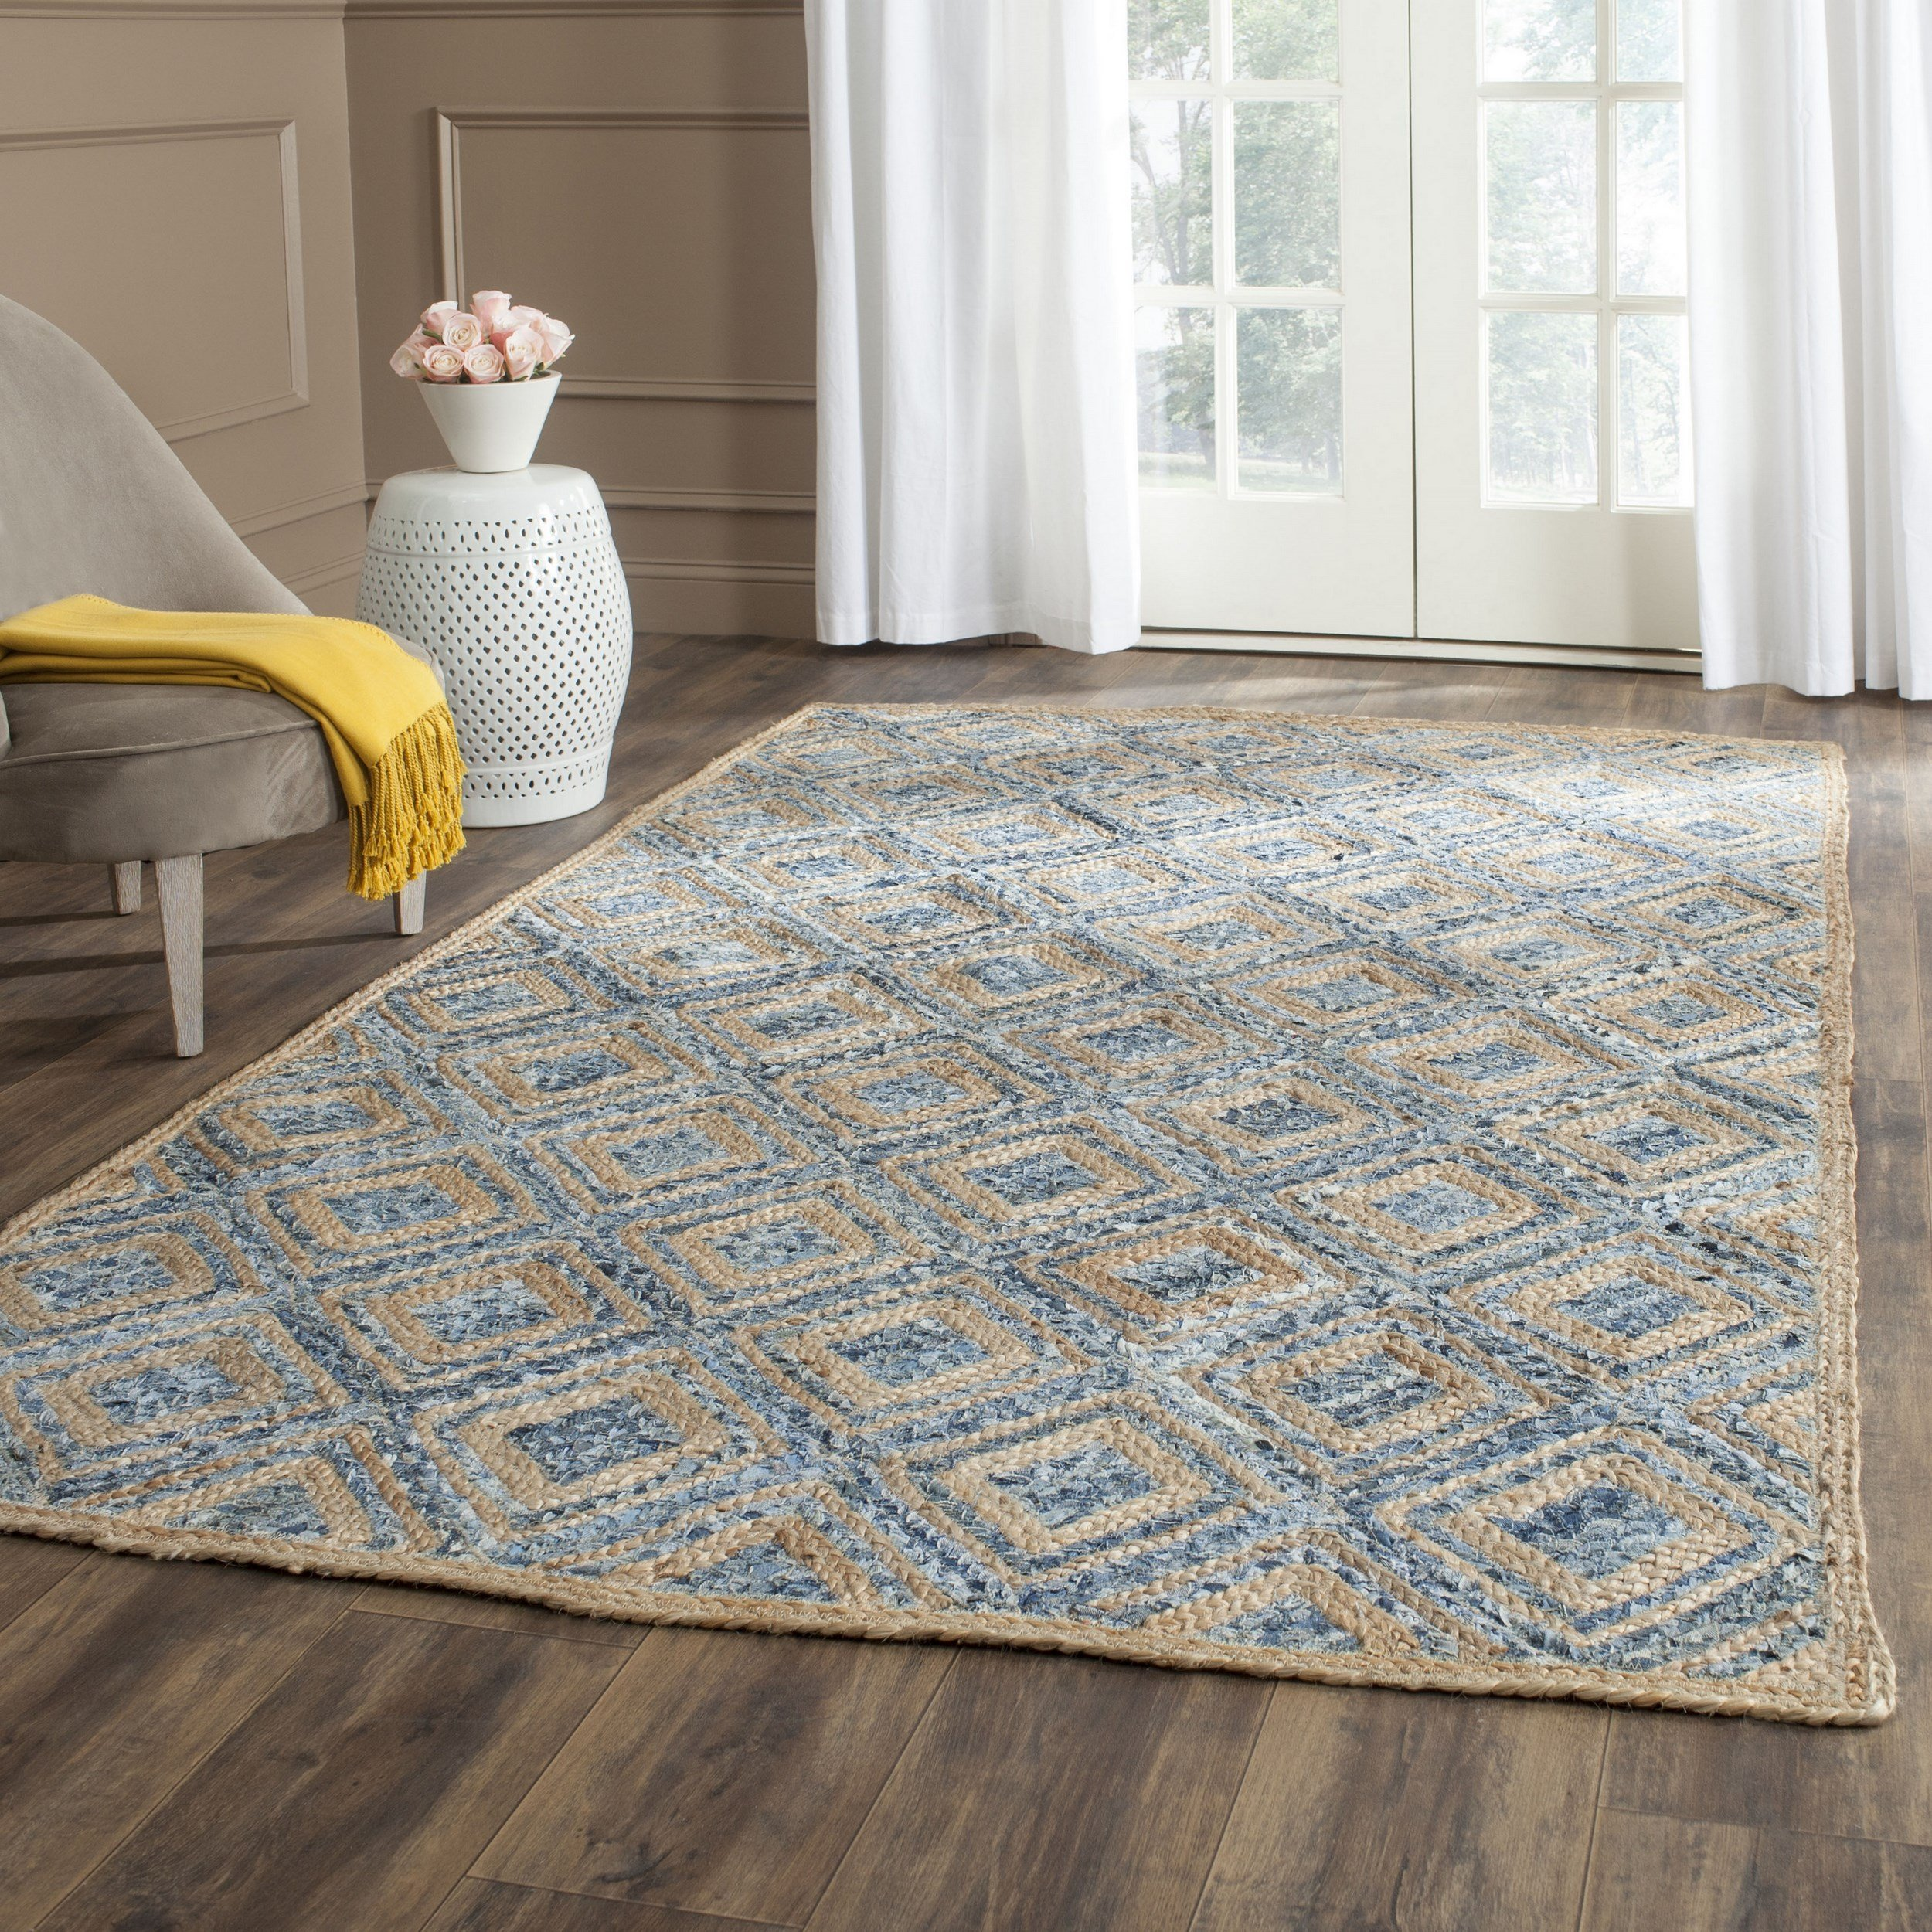 Safavieh Cape Cod Collection CAP354A Hand Woven Flatweave Diamond Geometric Natural and Blue Jute Area Rug (5' x 8') by Safavieh